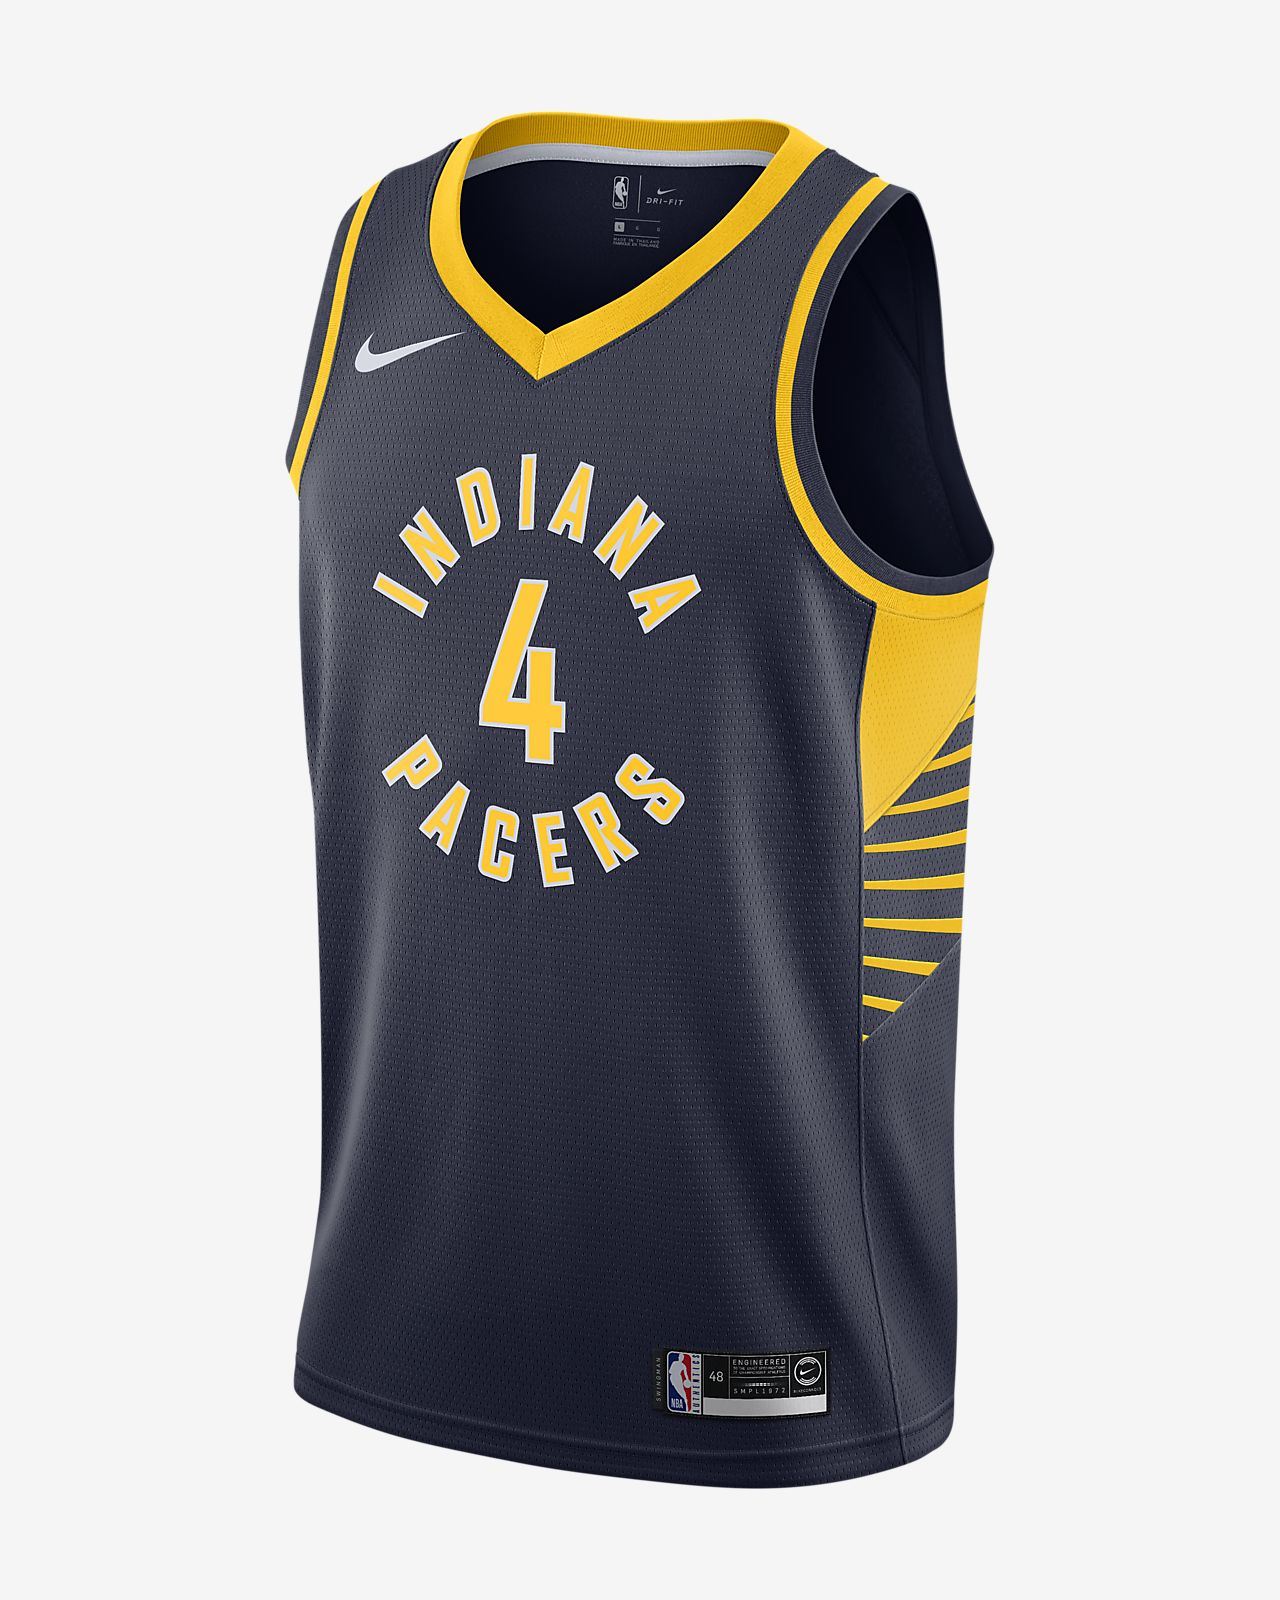 Maillot Nike NBA Swingman Victor Oladipo Pacers Icon Edition